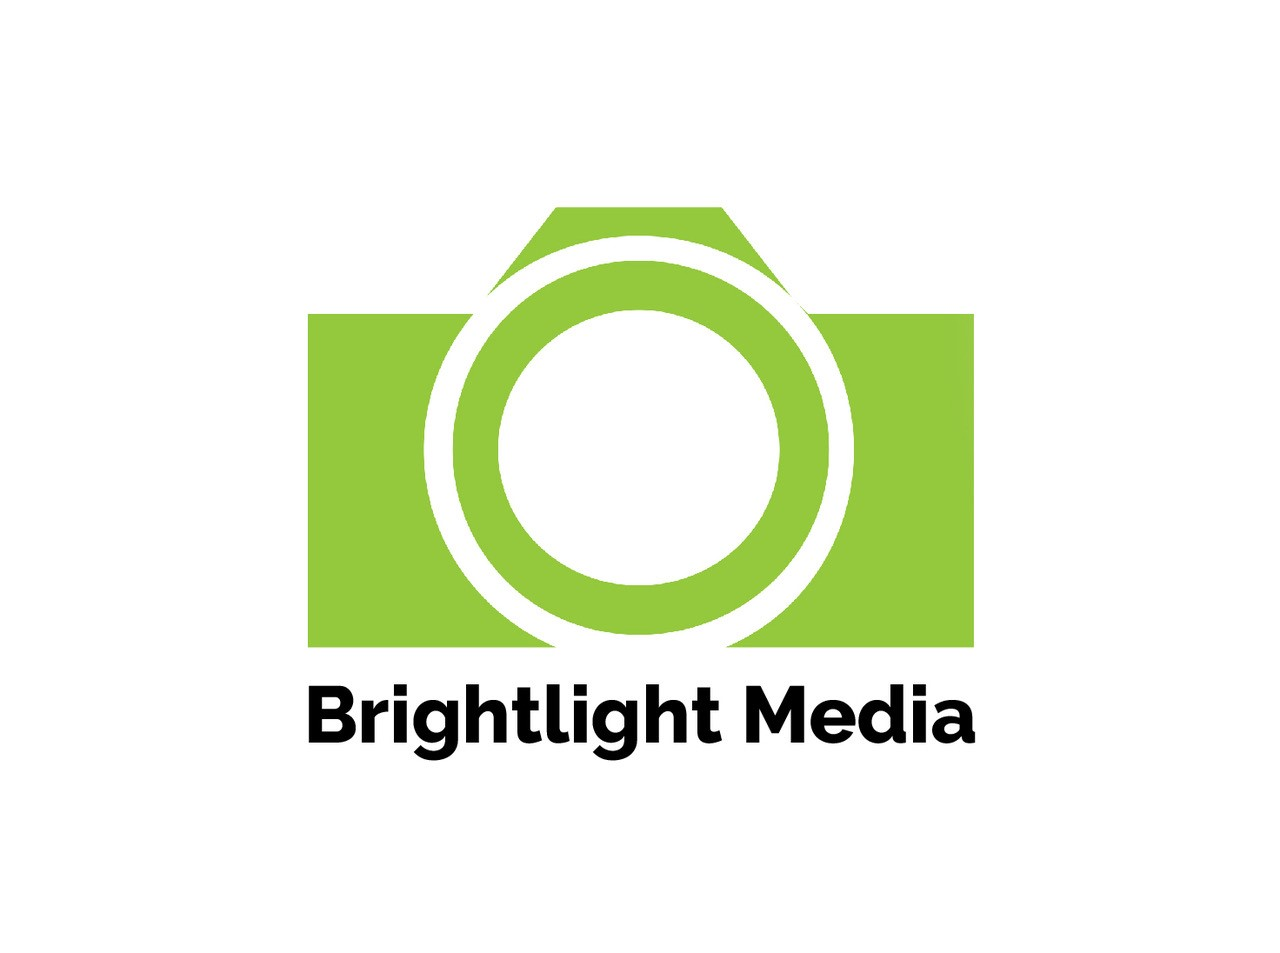 Brightlight_Media